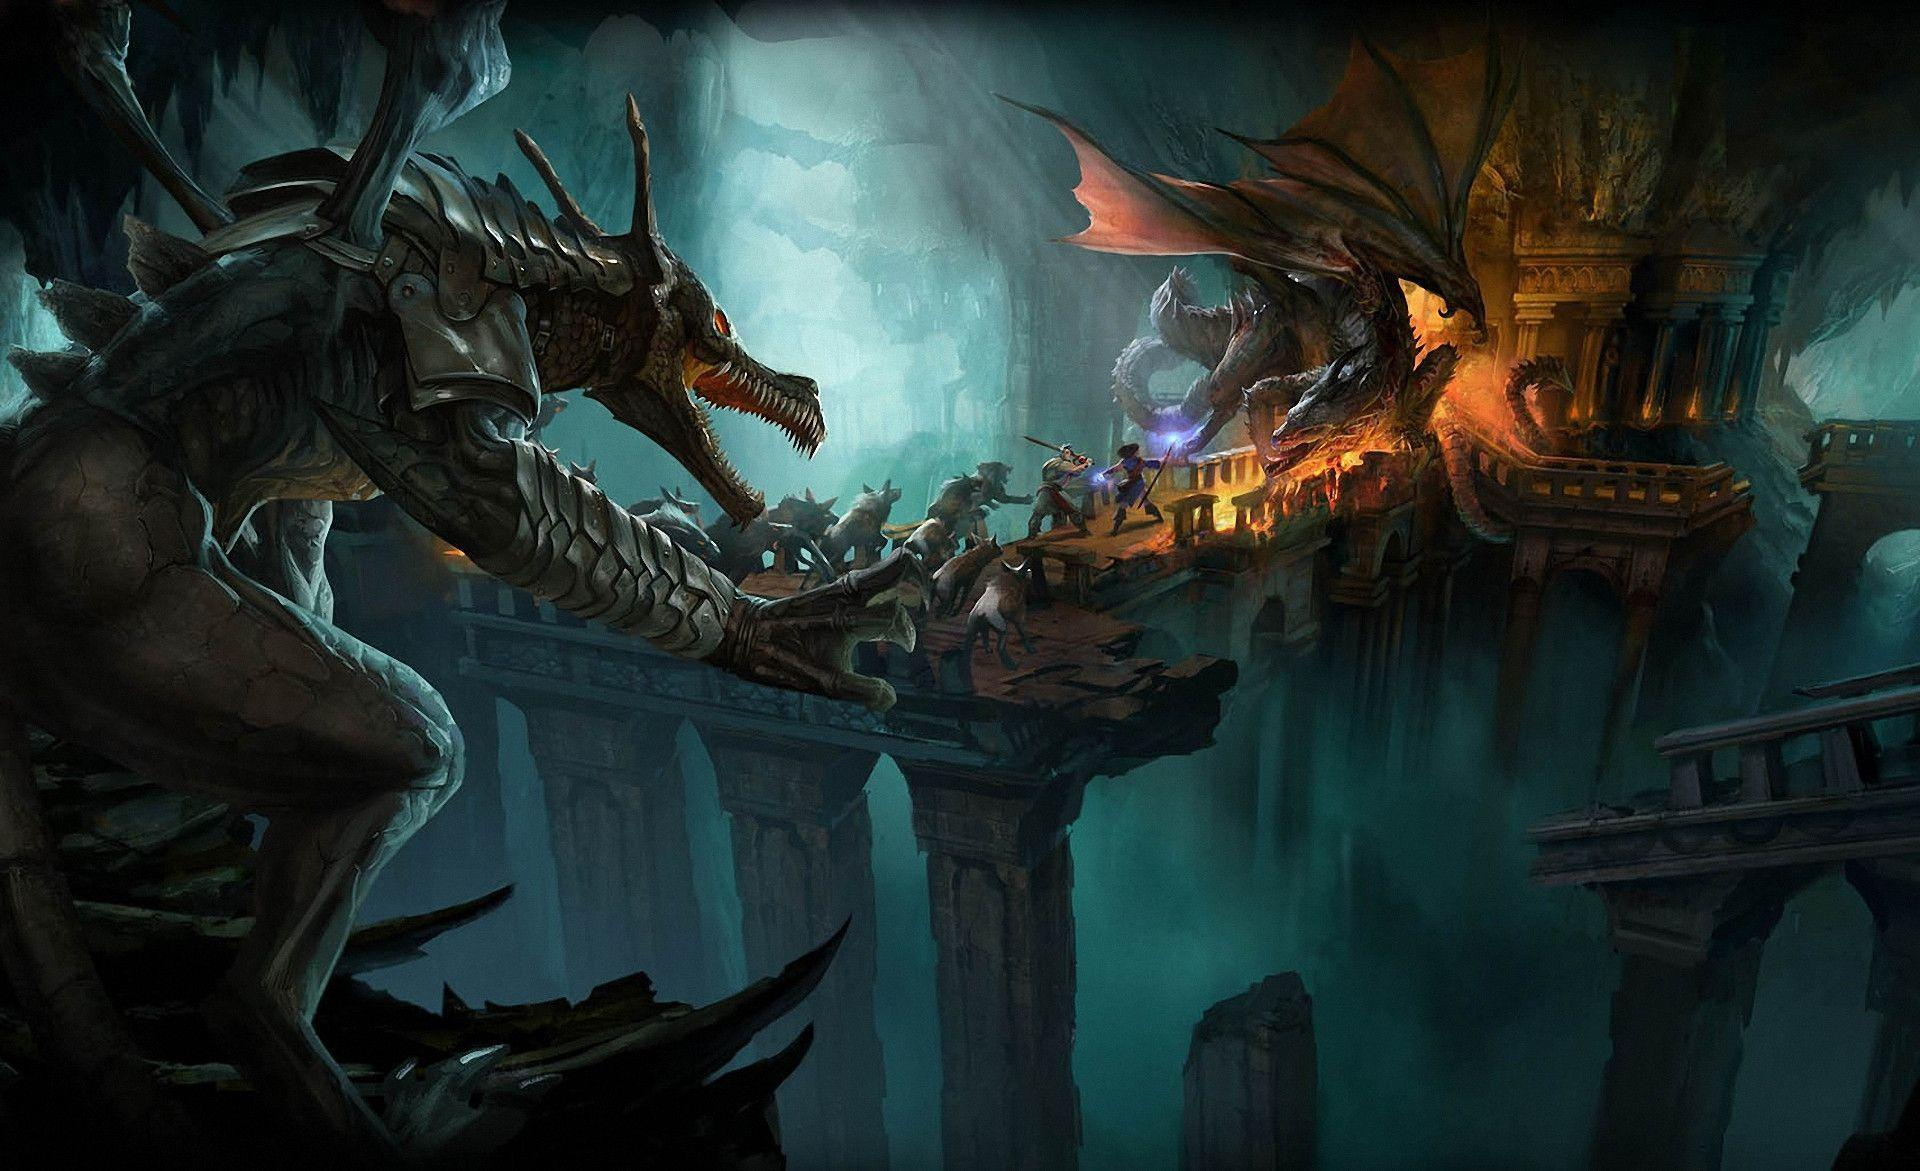 Download wallpapers battle, travelers, Dungeon, Dragons free